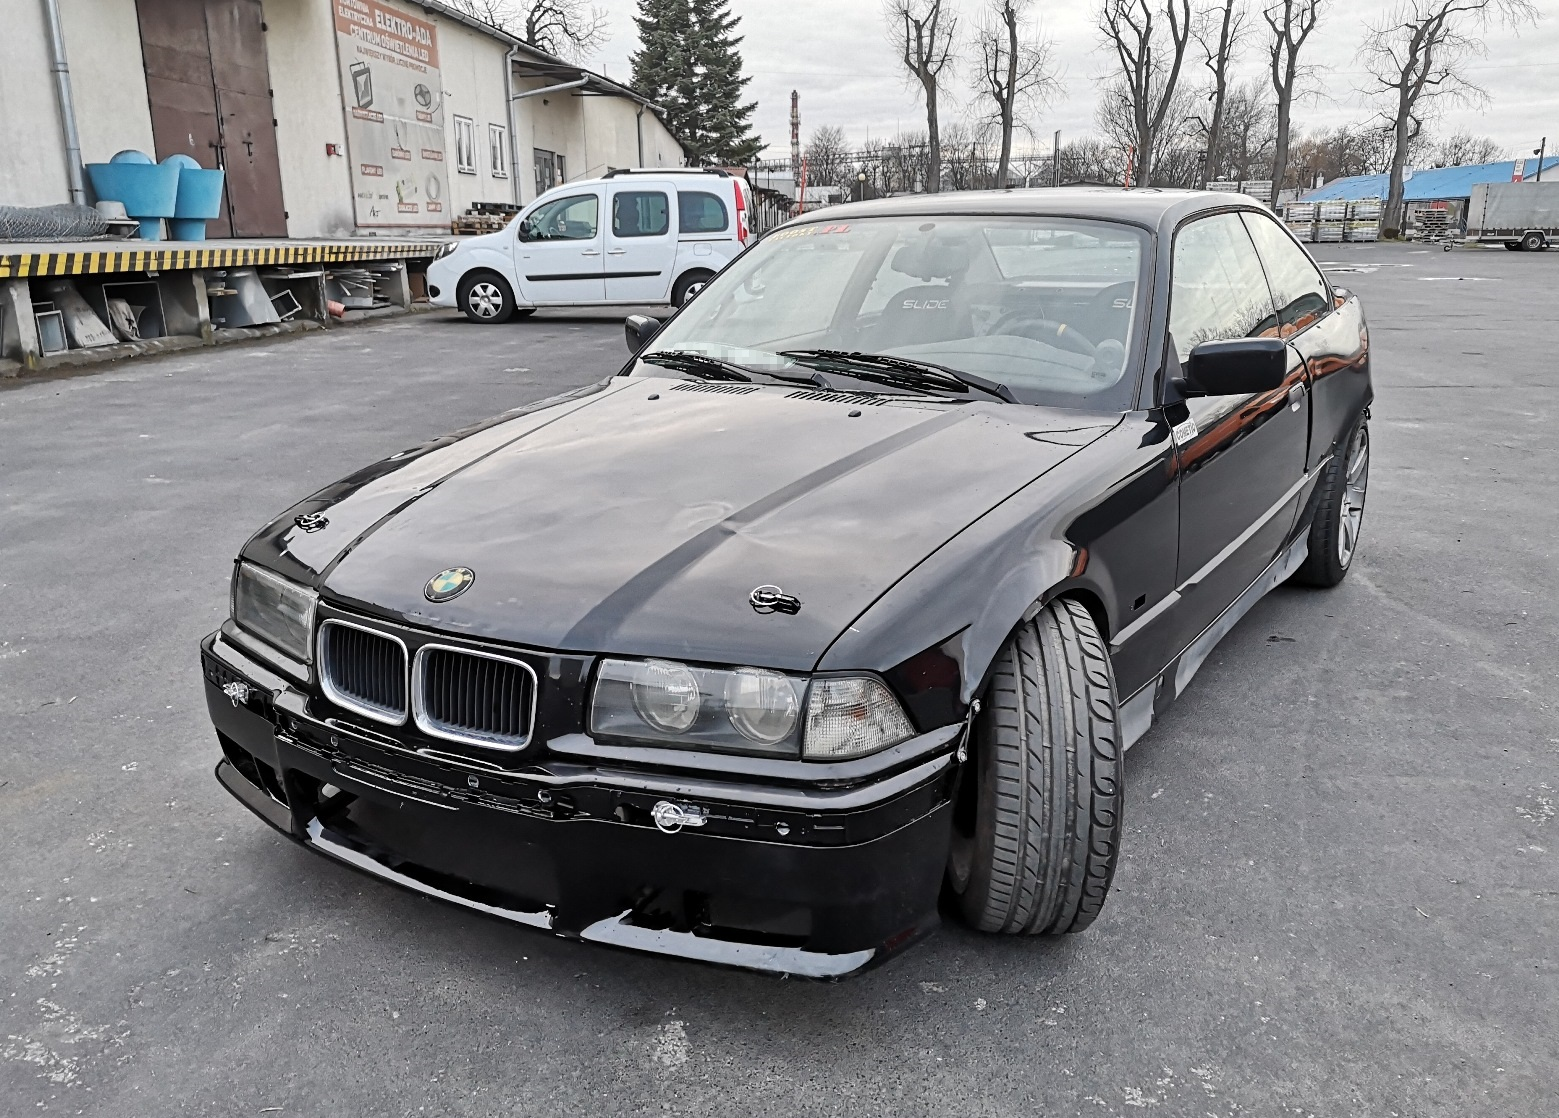 BMW E36 M50B29V Turbo >> 472KM 646Nm